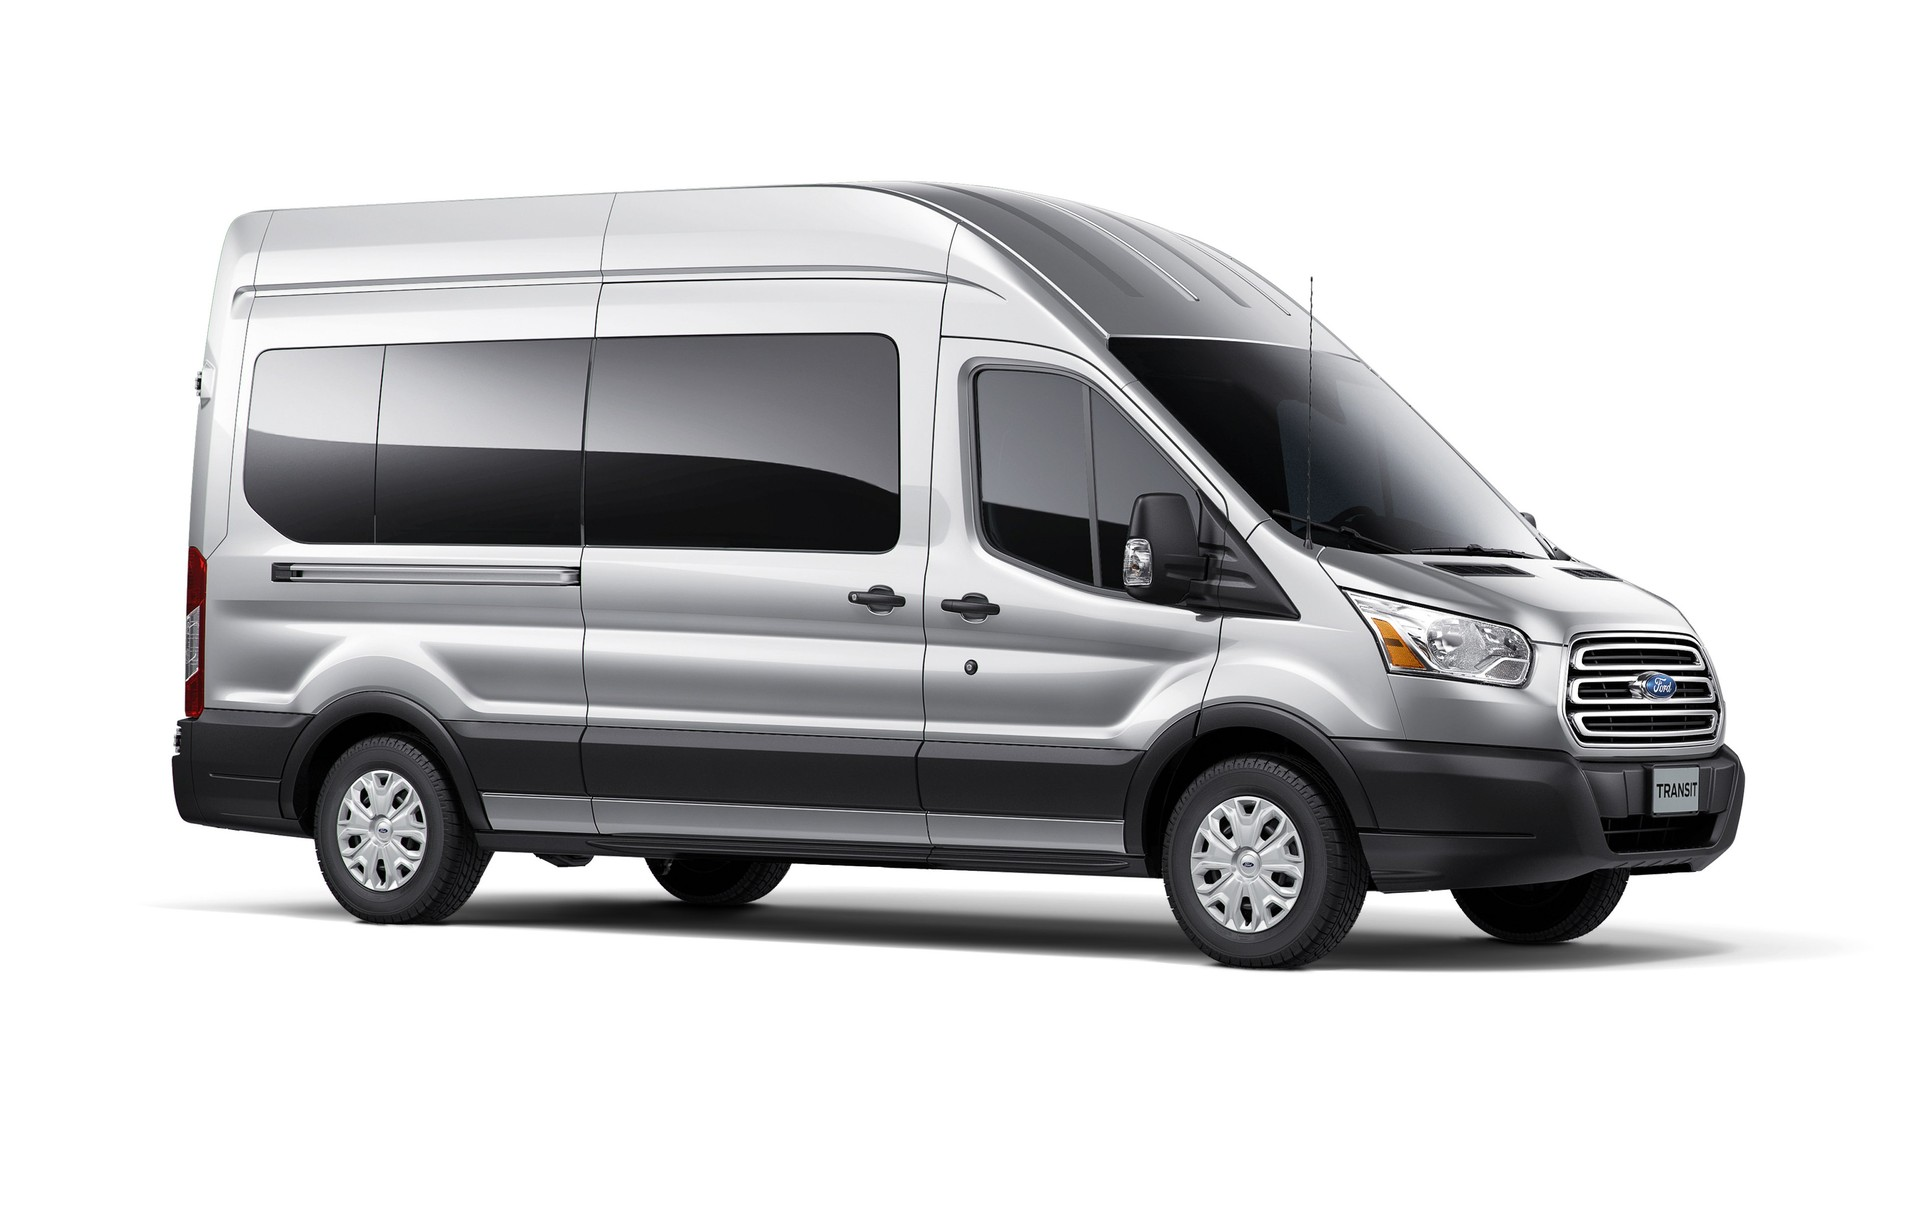 2015 ford transit wagon review ratings specs prices. Black Bedroom Furniture Sets. Home Design Ideas